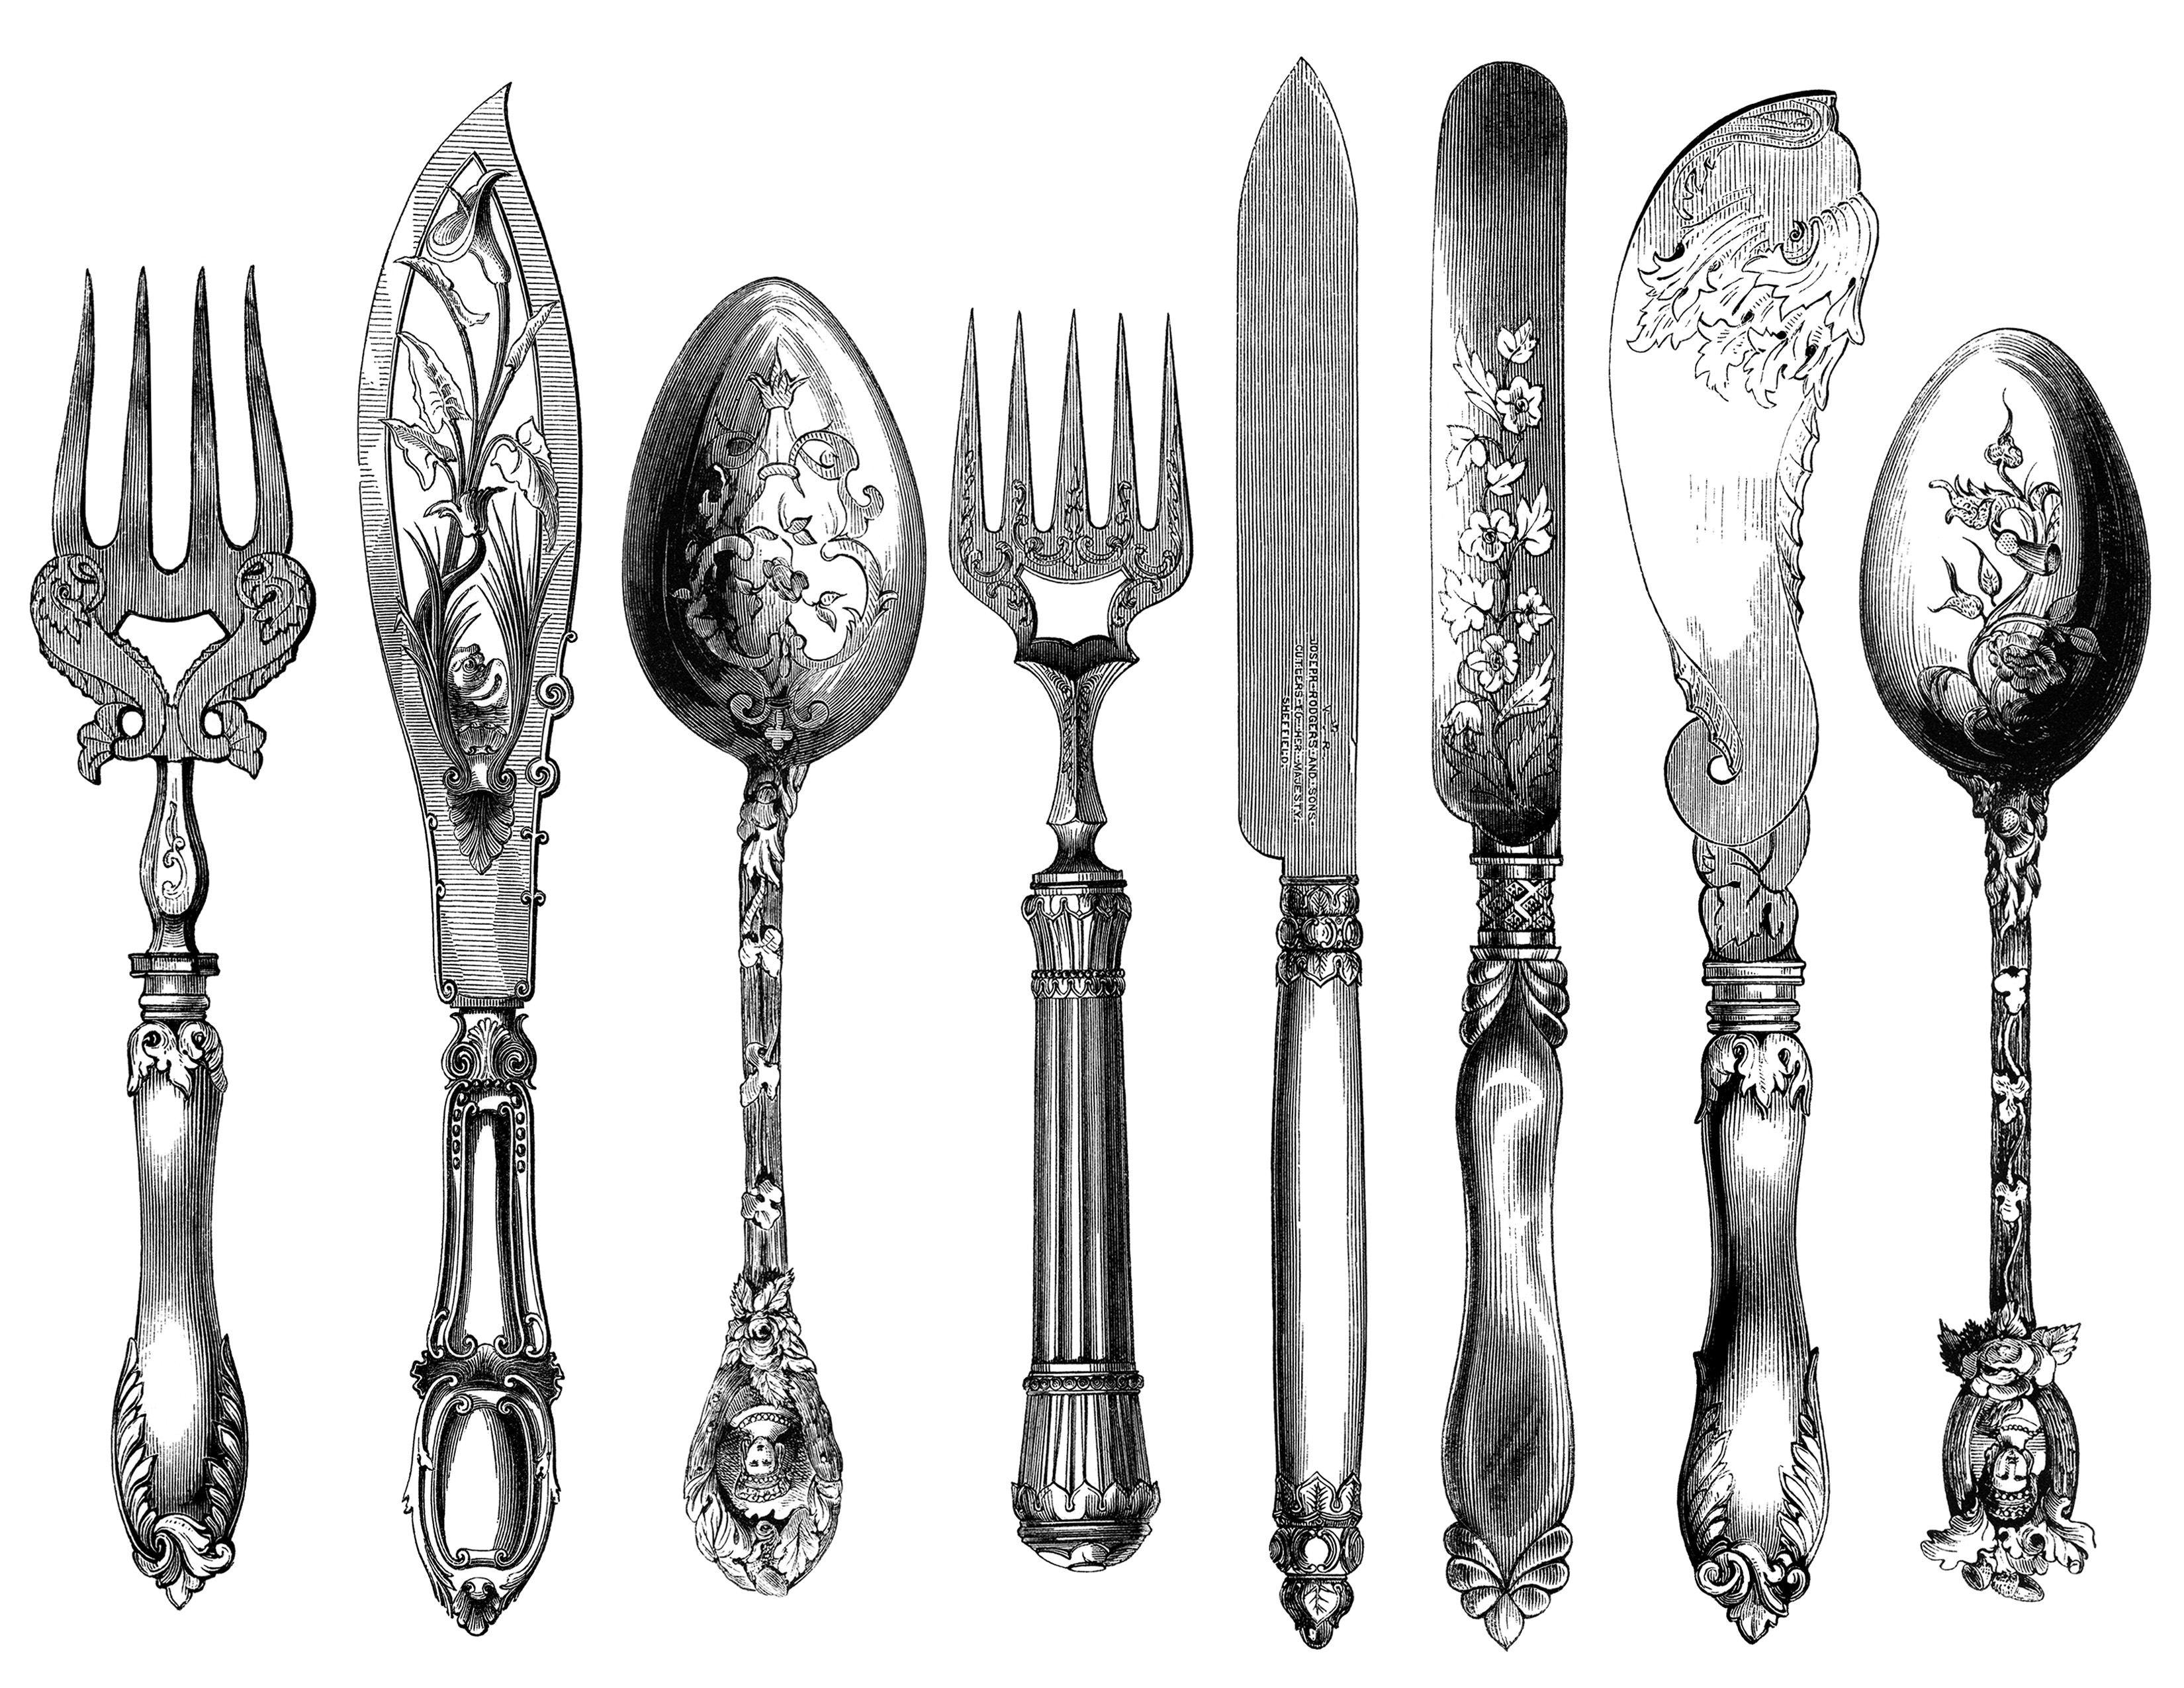 Vintage spoon and fork clipart svg freeuse download Antique Cutlery Engravings Set 2 ~ Free Clip Art - Old ... svg freeuse download